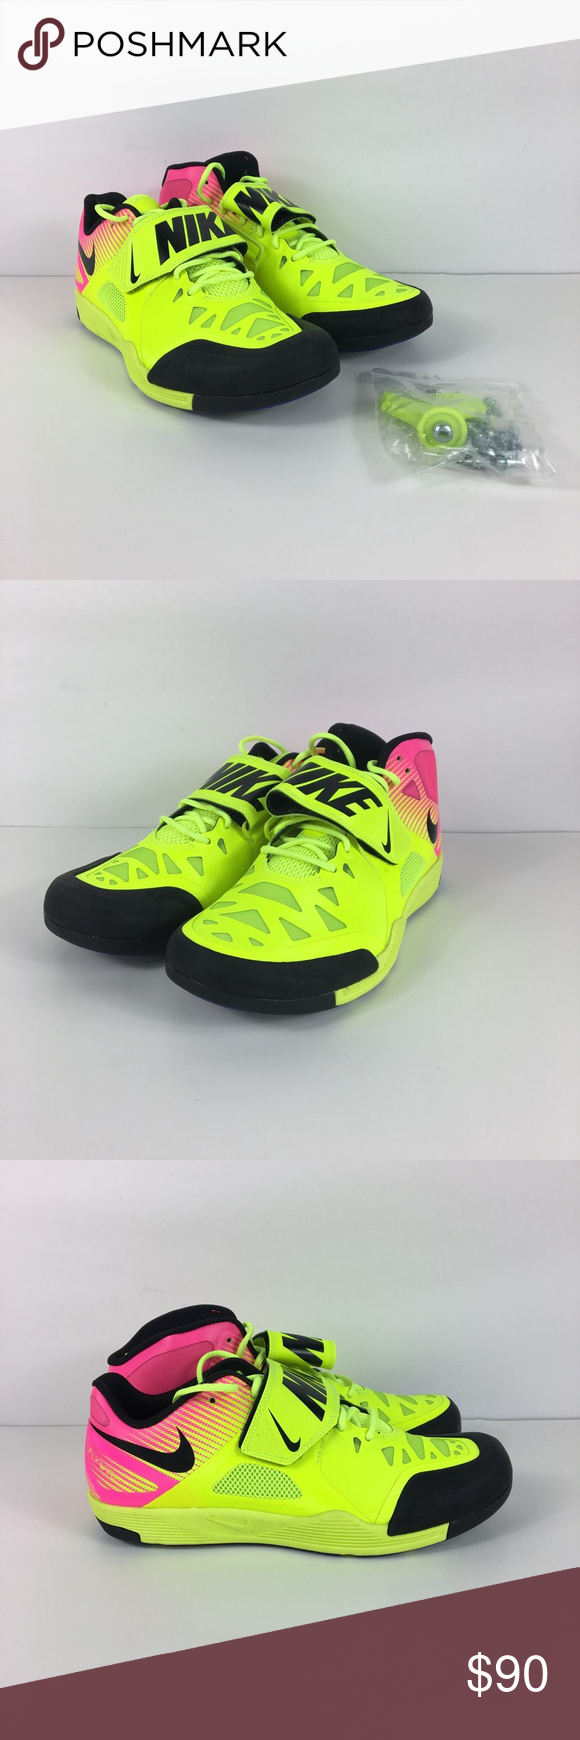 c0c257504cf8 Nike Mens Zoom Javelin Elite 2 OC Throwing Shoes Nike Size 7 Mens Zoom  Javelin Elite 2 OC Flywire Throwing Shoes 882020-999 New Brand new without  box Does ...